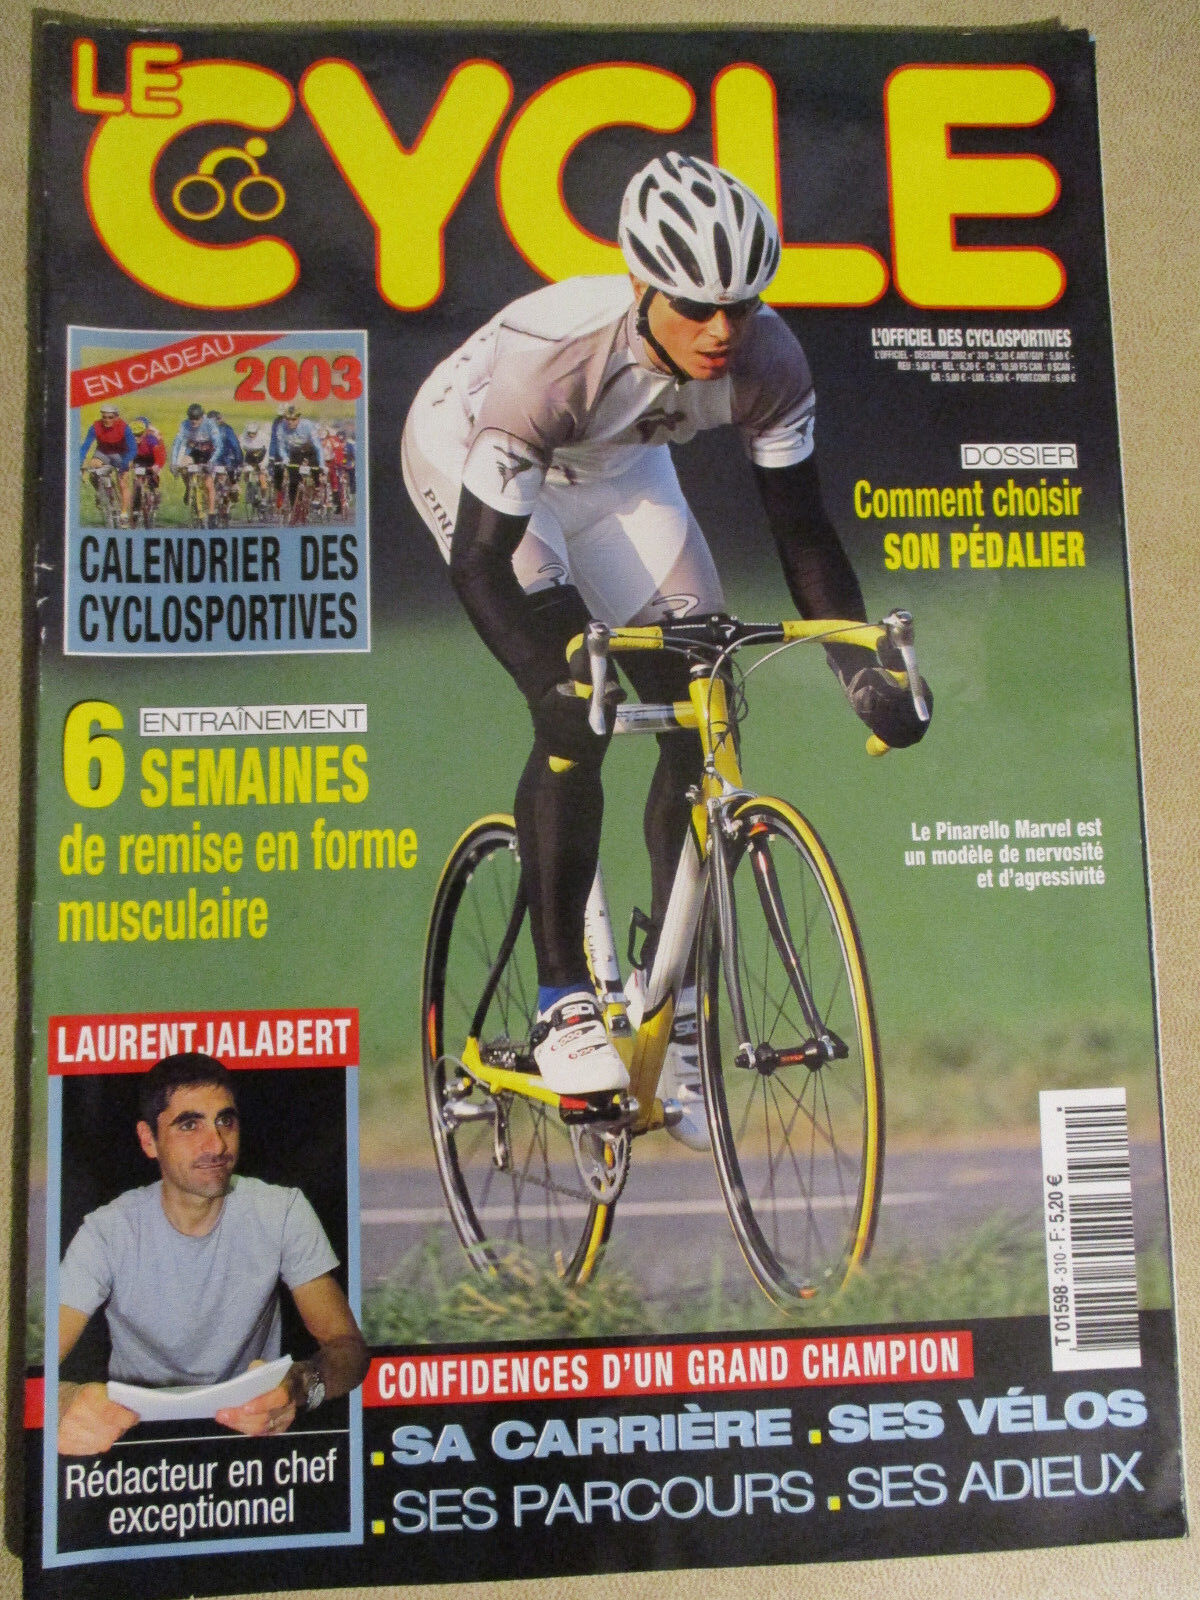 LE CYCLE N°310 : DECEMBRE 2002 : LAURENT JALABERT - PINARELLO MARVEL -CALENDRIER